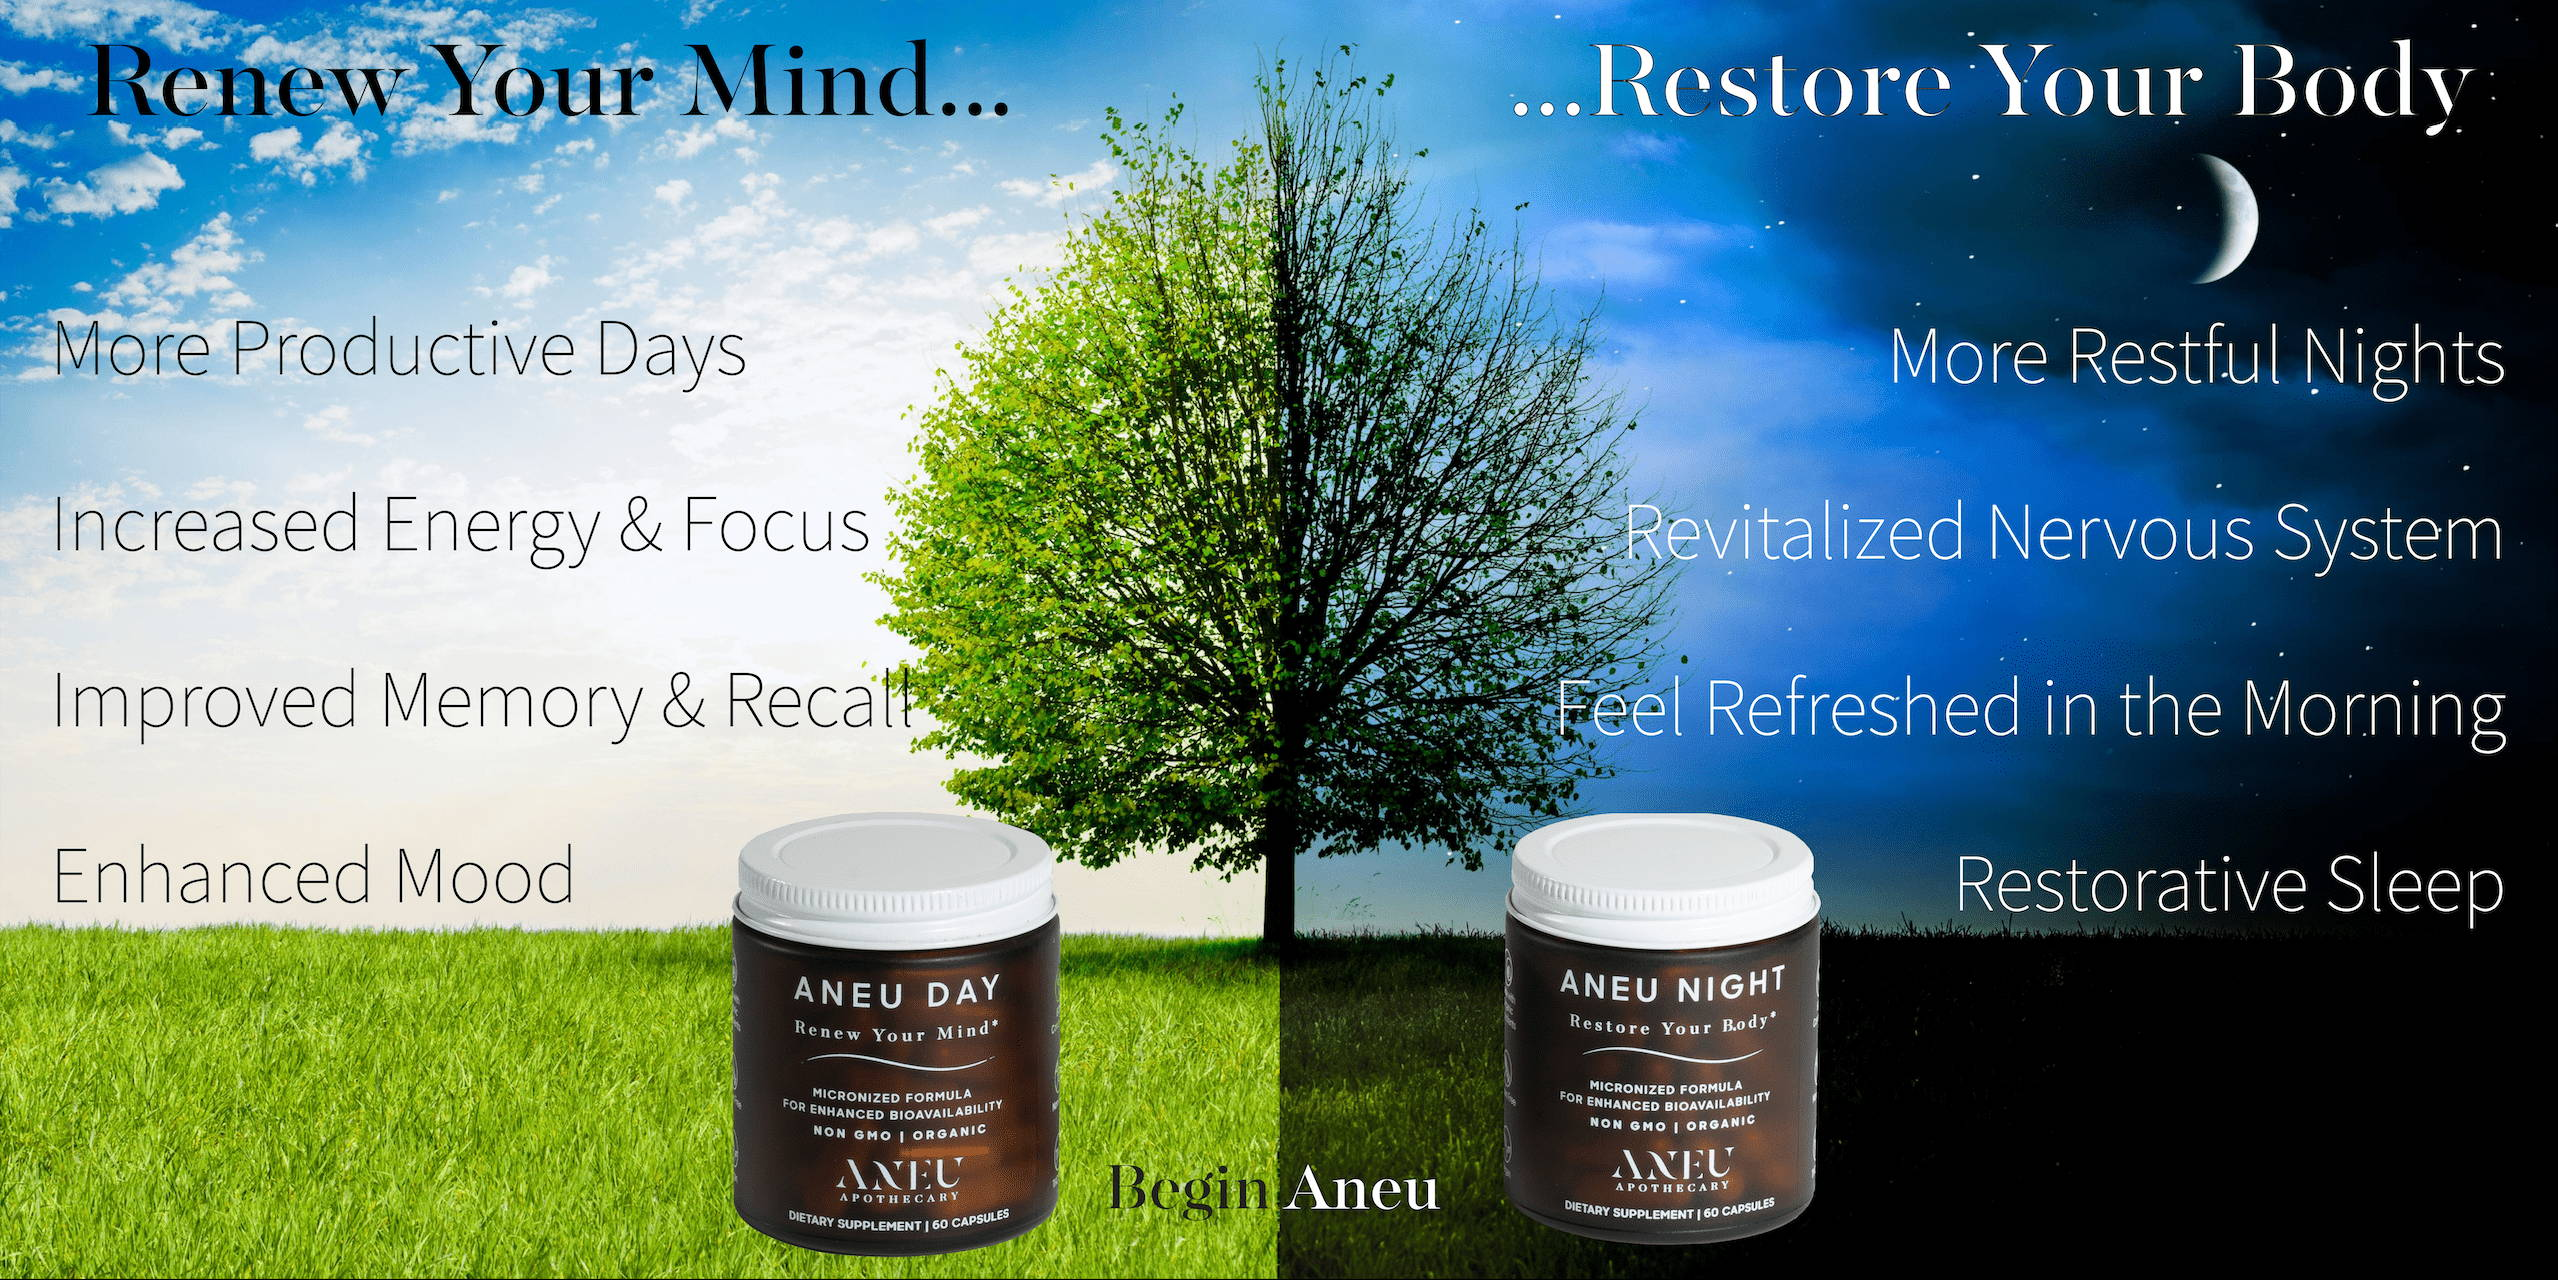 aneu day in a day time scene with green tree and benefits next to aneu night in a night time scene with dark tree and benefits